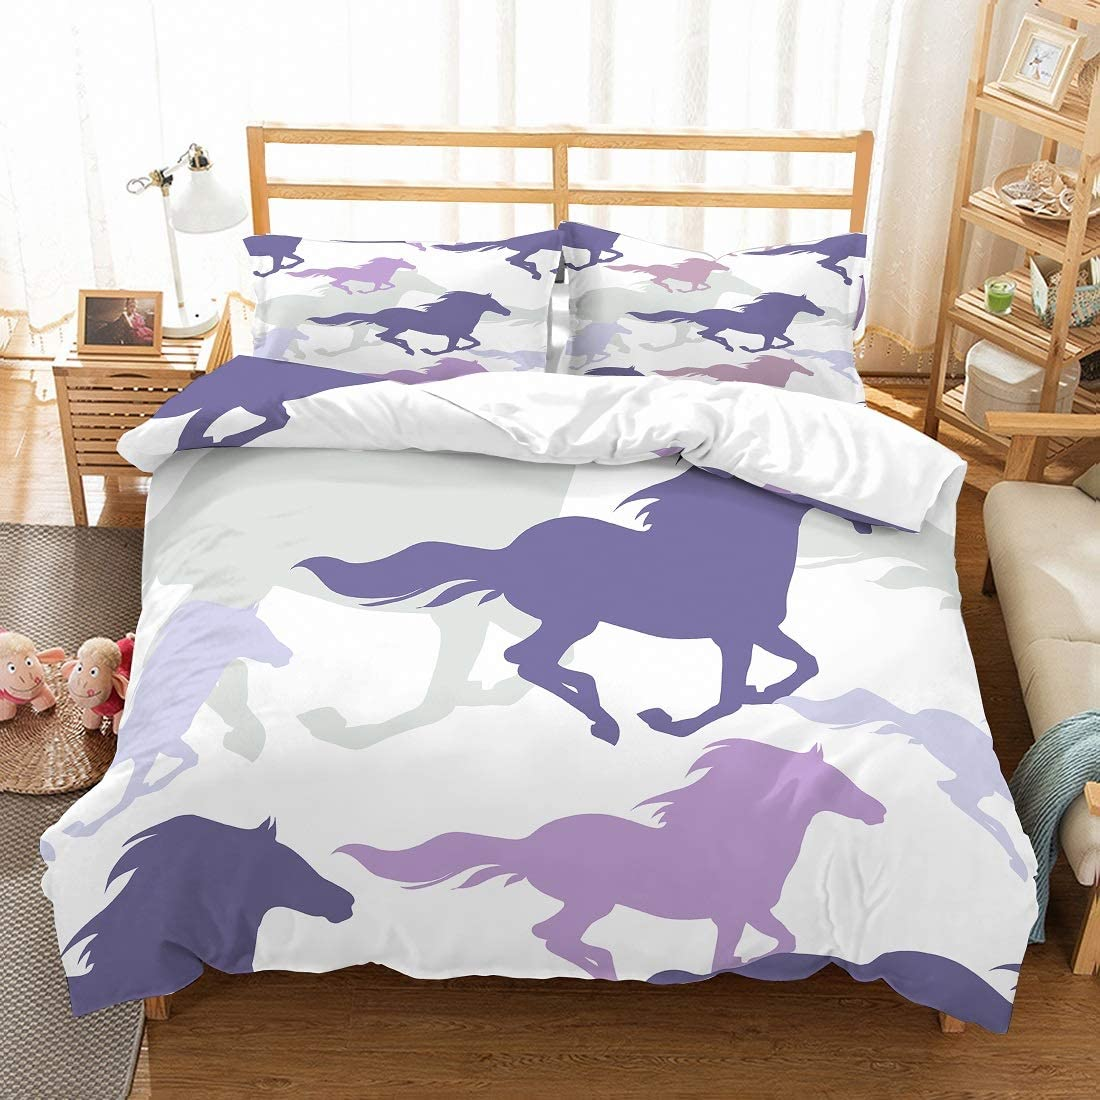 MOUMOUHOME Horse Bedding Set Twin Size Purple/Gray Horses Running Bedspread Printed White Comforter Duvet Cover Set for Kids Teens Adults 2 Pieces with 1 Duvet Cover 1 Pillowcase